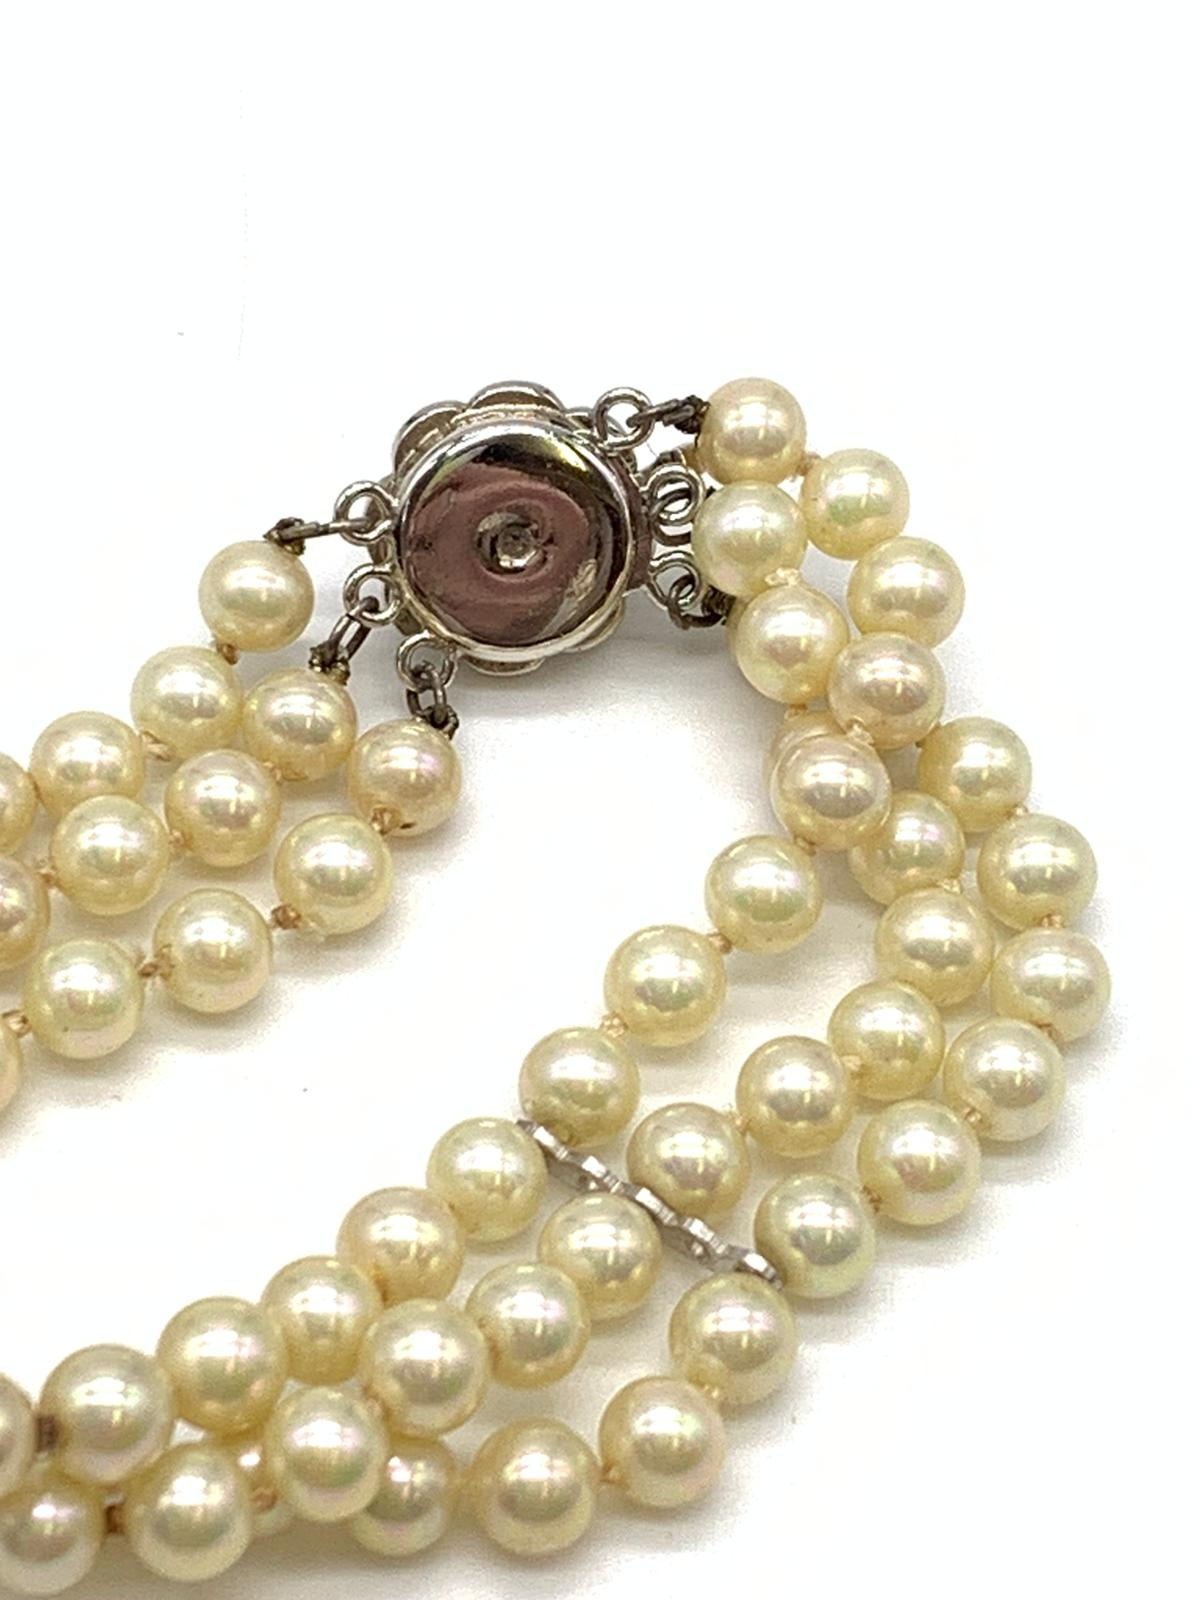 3 Strings Pearl Bracelet with Ornate Catch 16cm - Image 3 of 3